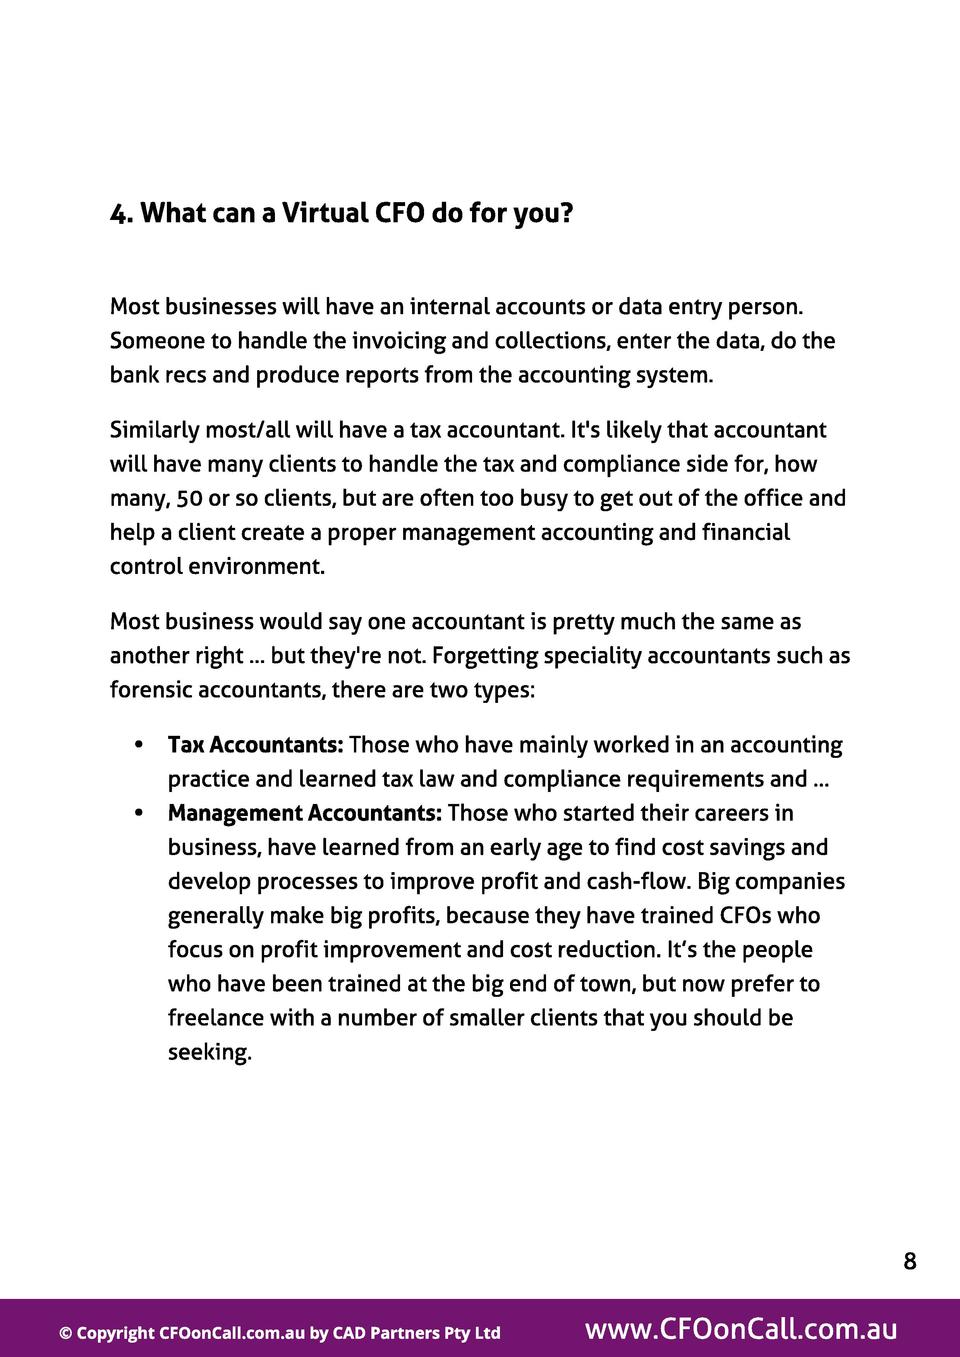 4. What can a Virt ual CFO do f or you   Most businesses will have an internal accounts or data entry person. Someone to h...